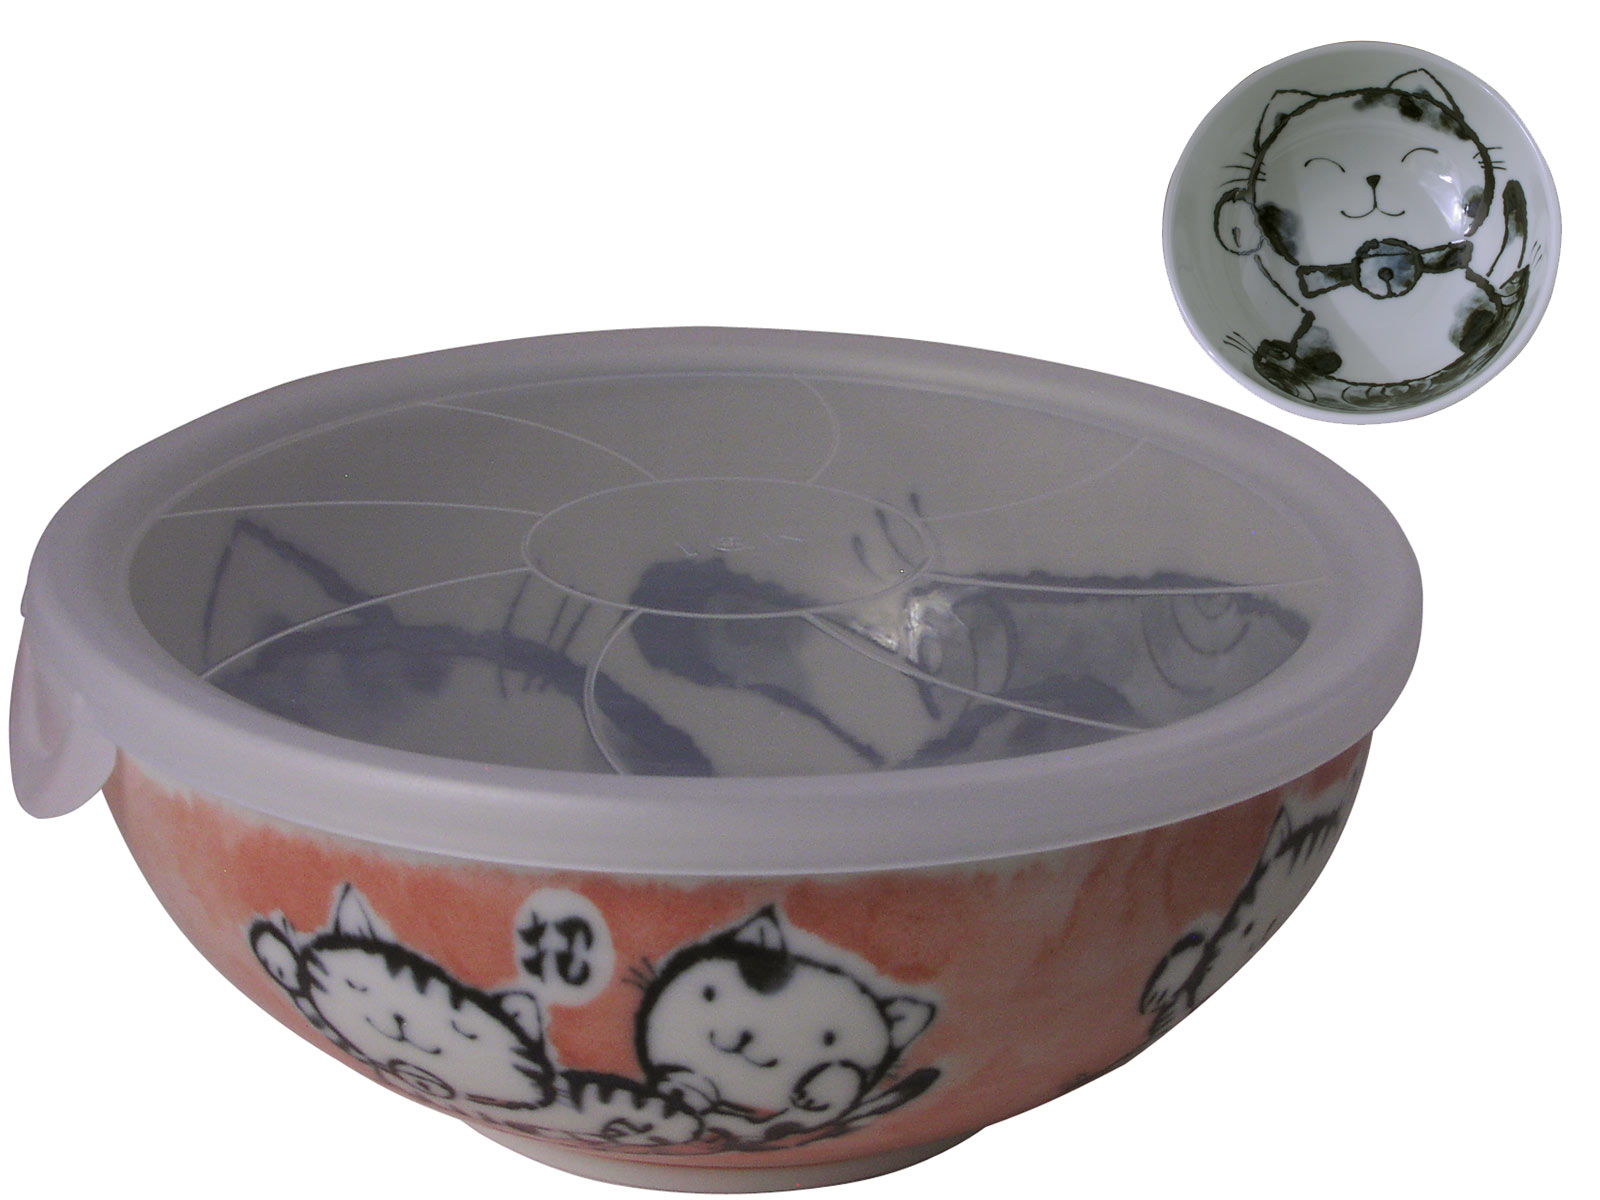 Orange And Cream Maneki Neko Ceramic Noodle Bowl With Lid